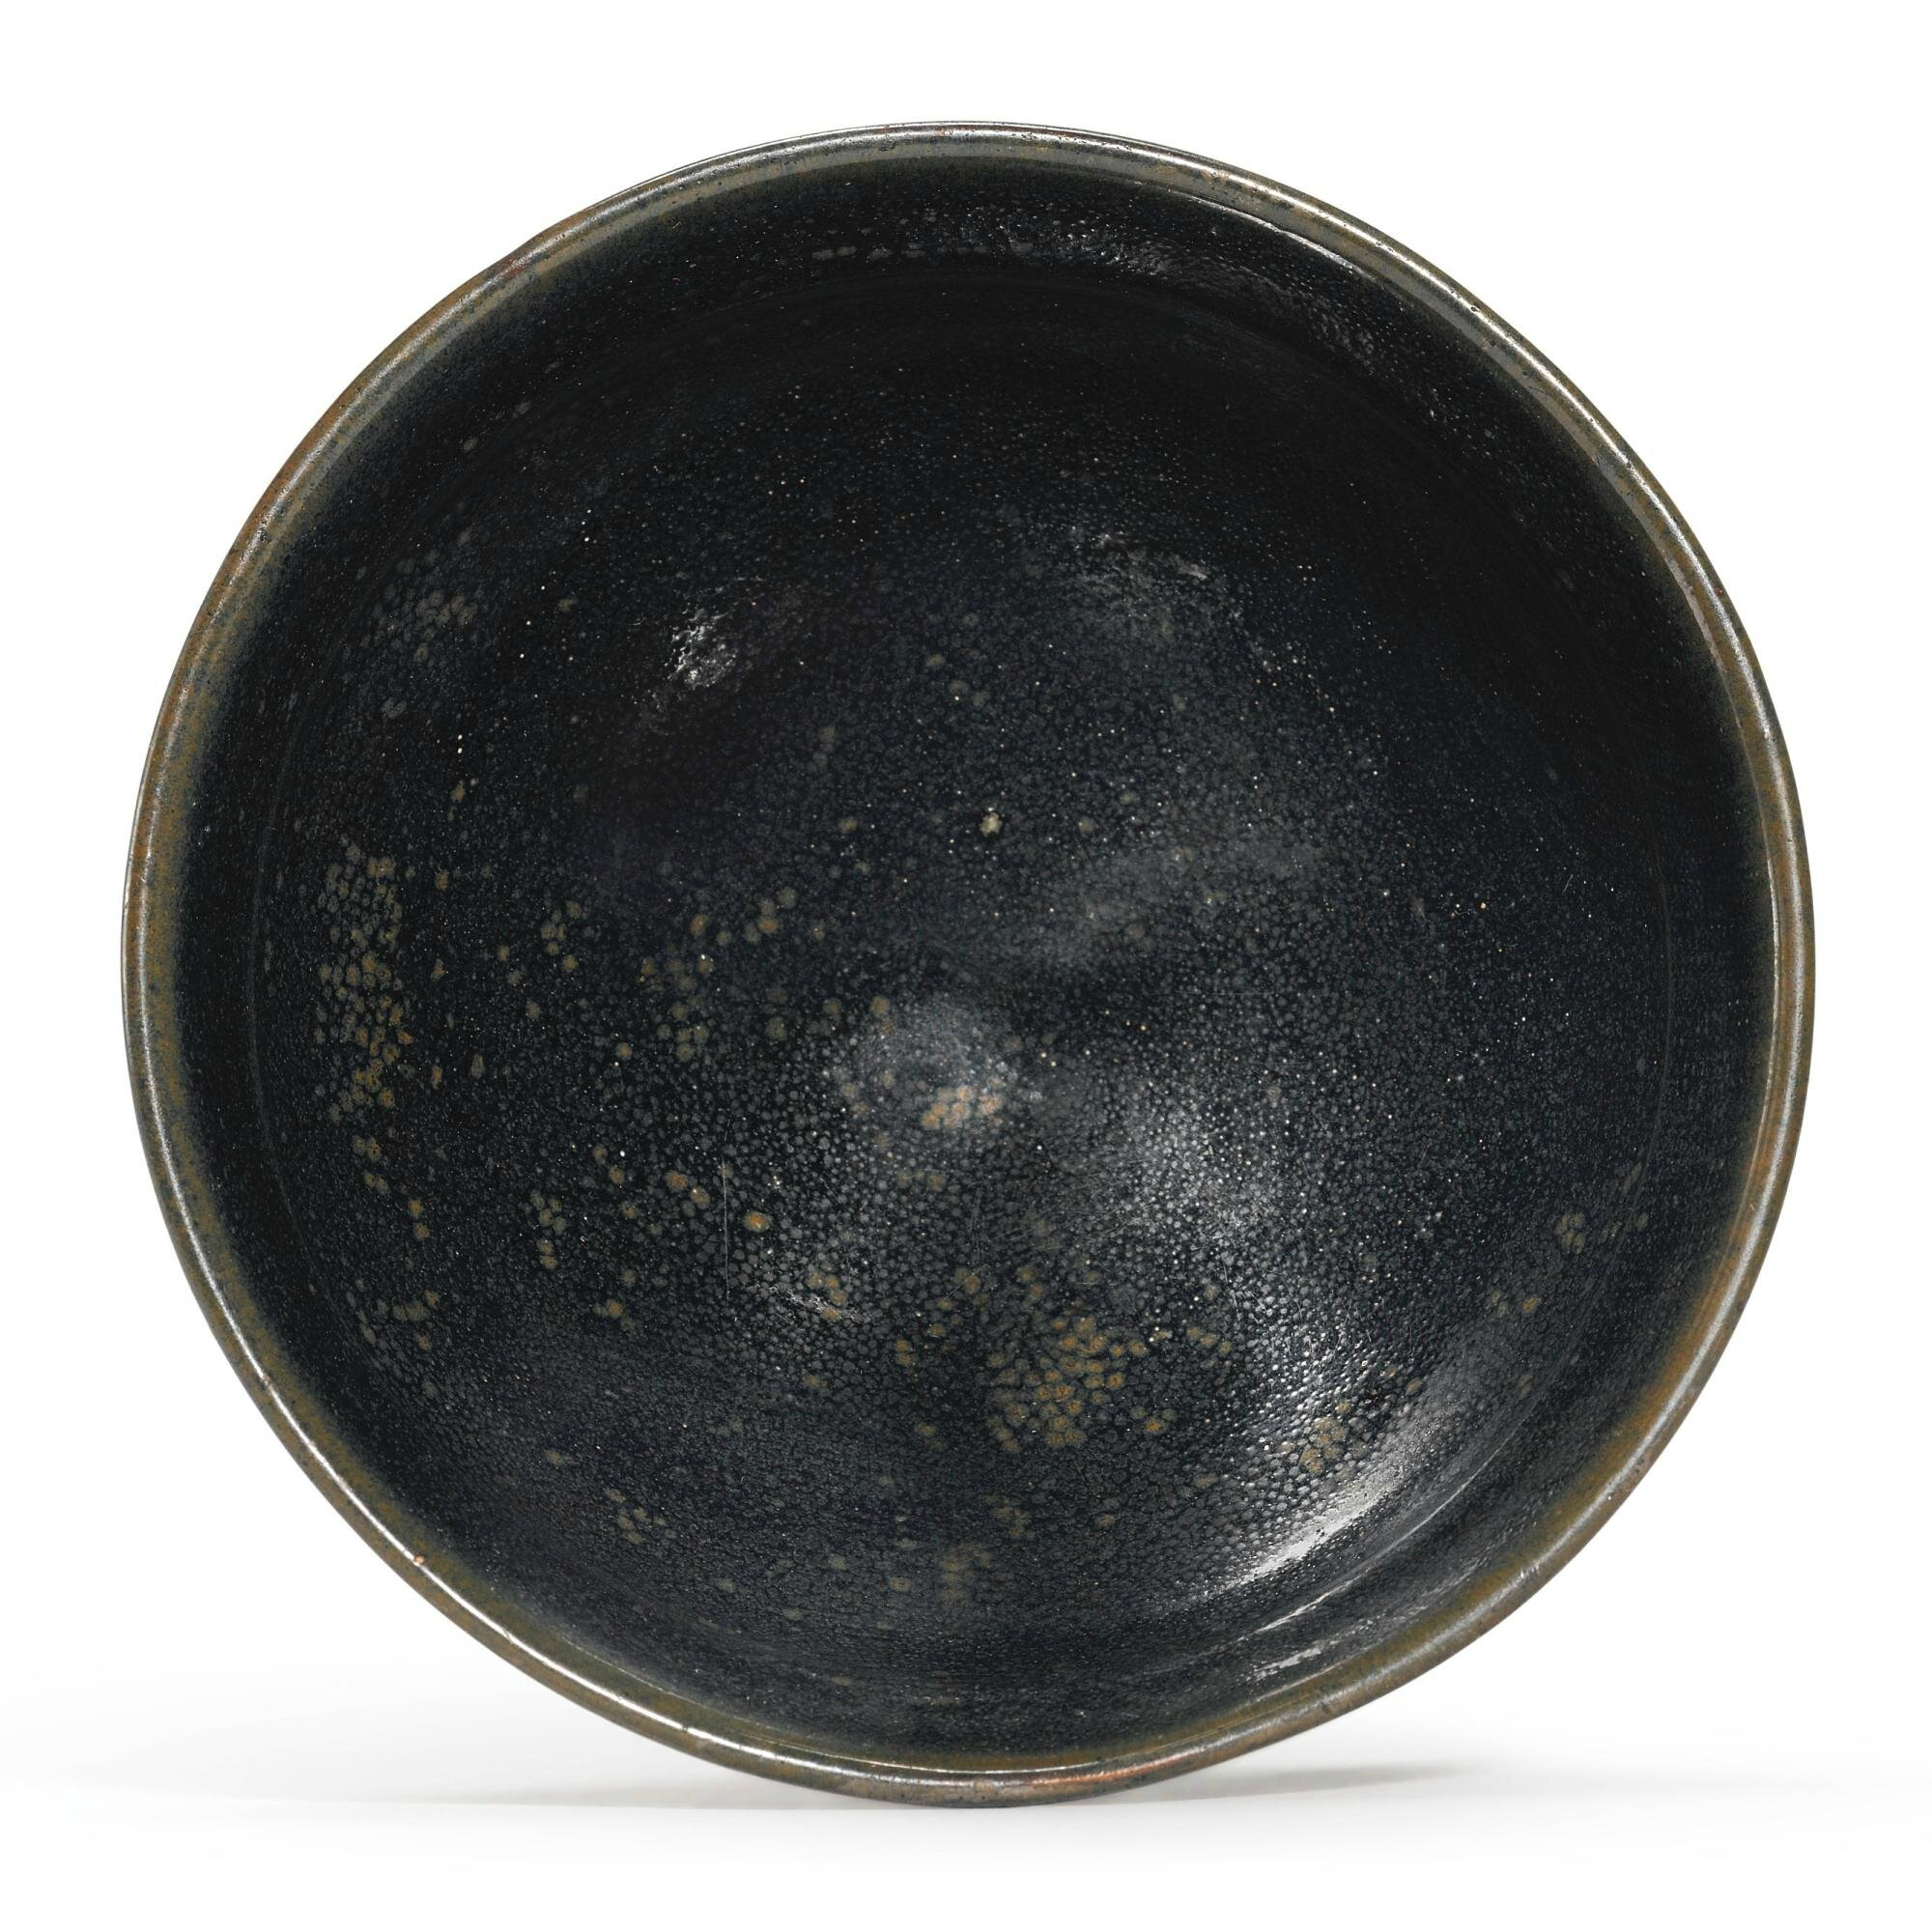 A Henan Black-Glazed 'Oil-Spot' Bowl, Northern Song-Jin Dynasty